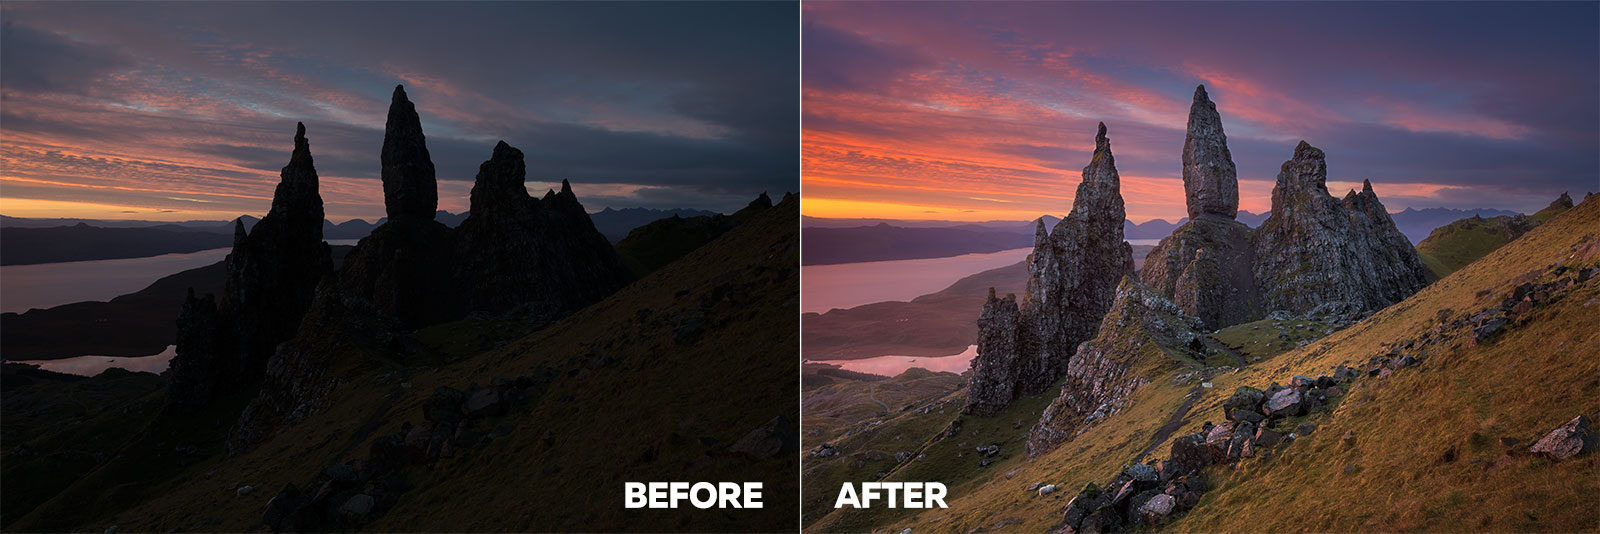 Before and After - Image post processing webinar for sunrise